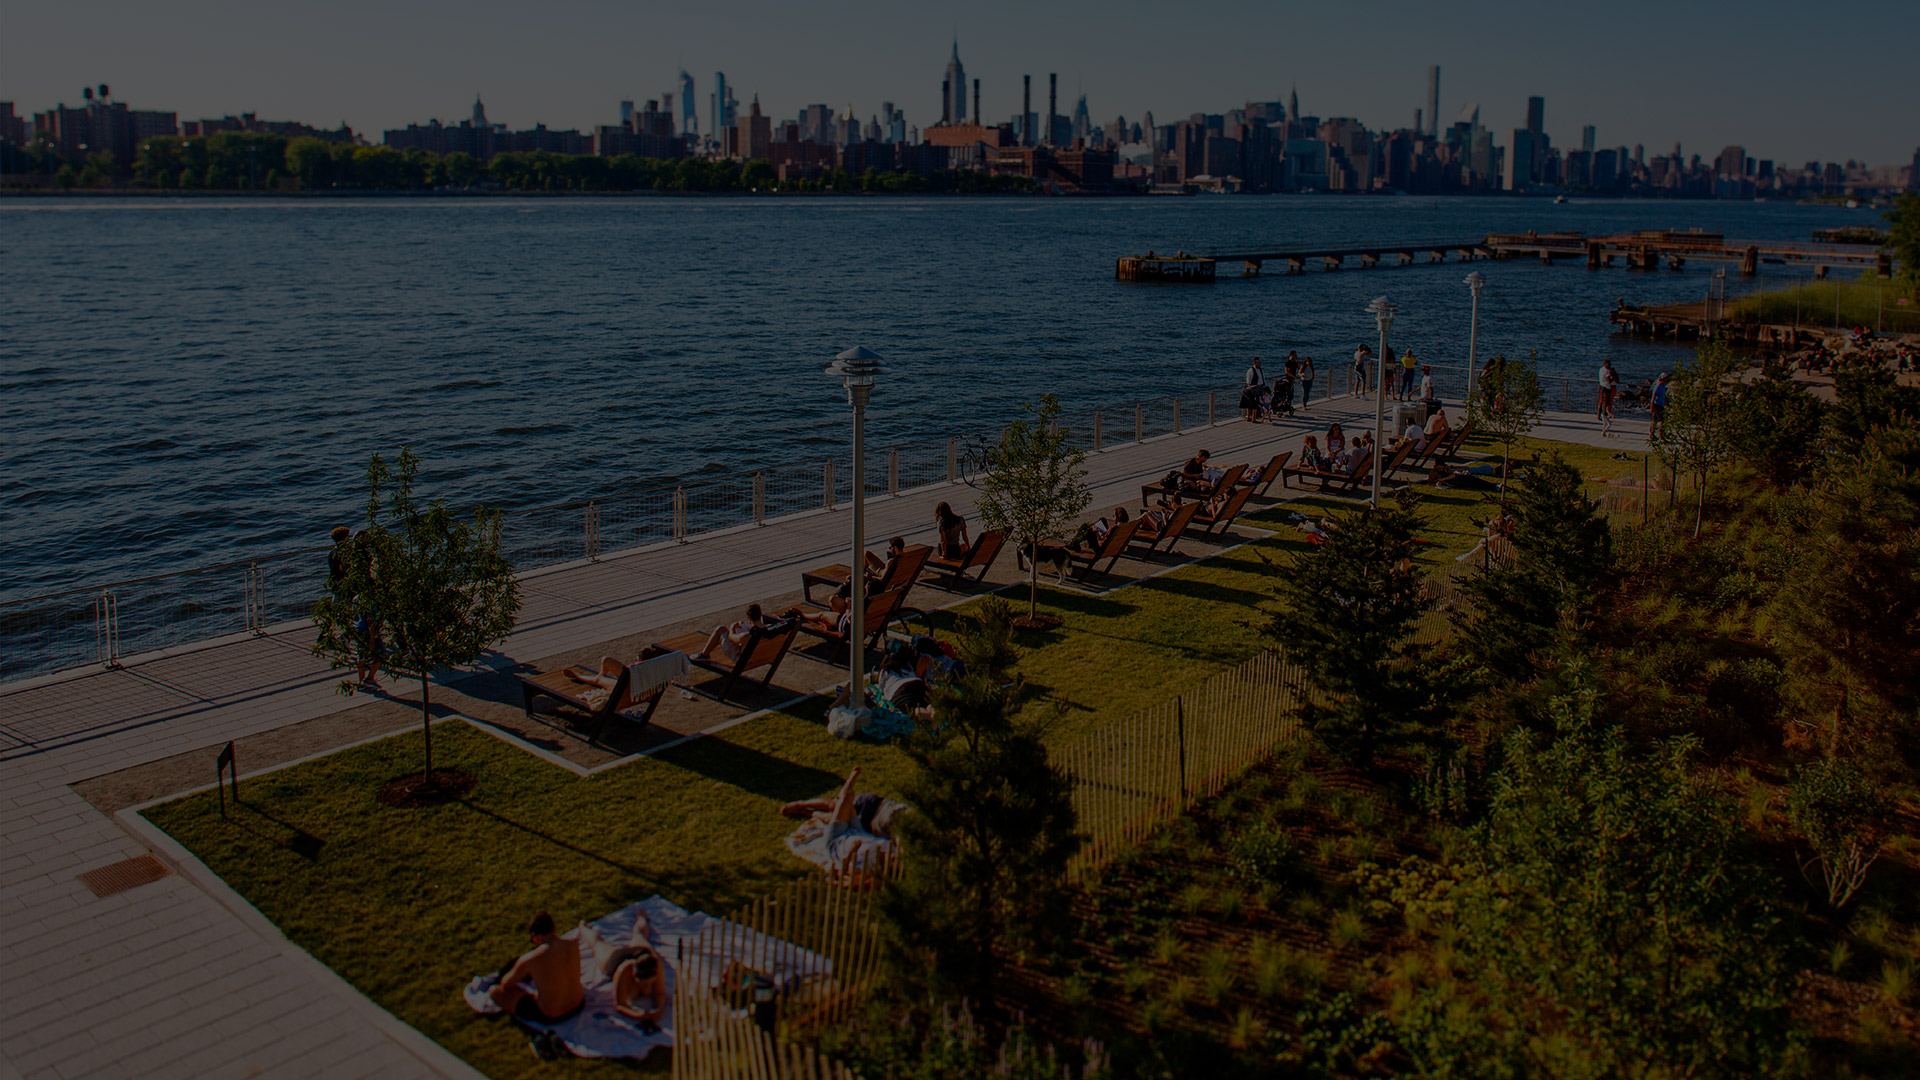 Park on the water - 1N4 Williamsburg New York